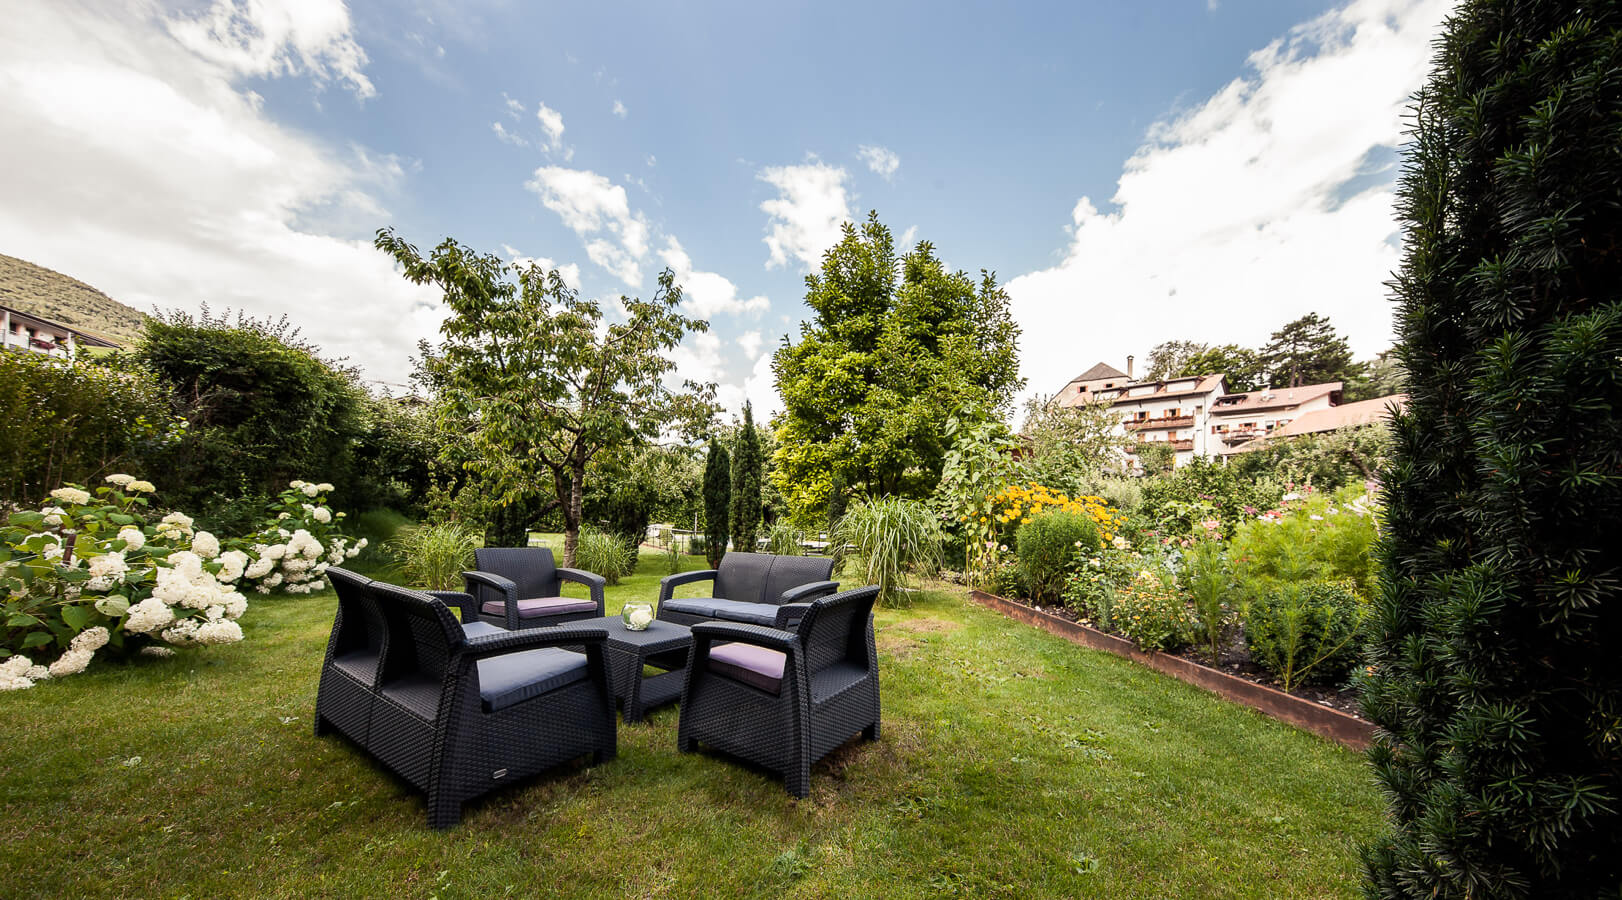 Restaurant Esszimmer Biberach Gartenmbel Fr Restaurants Latest Outdoor Collection With